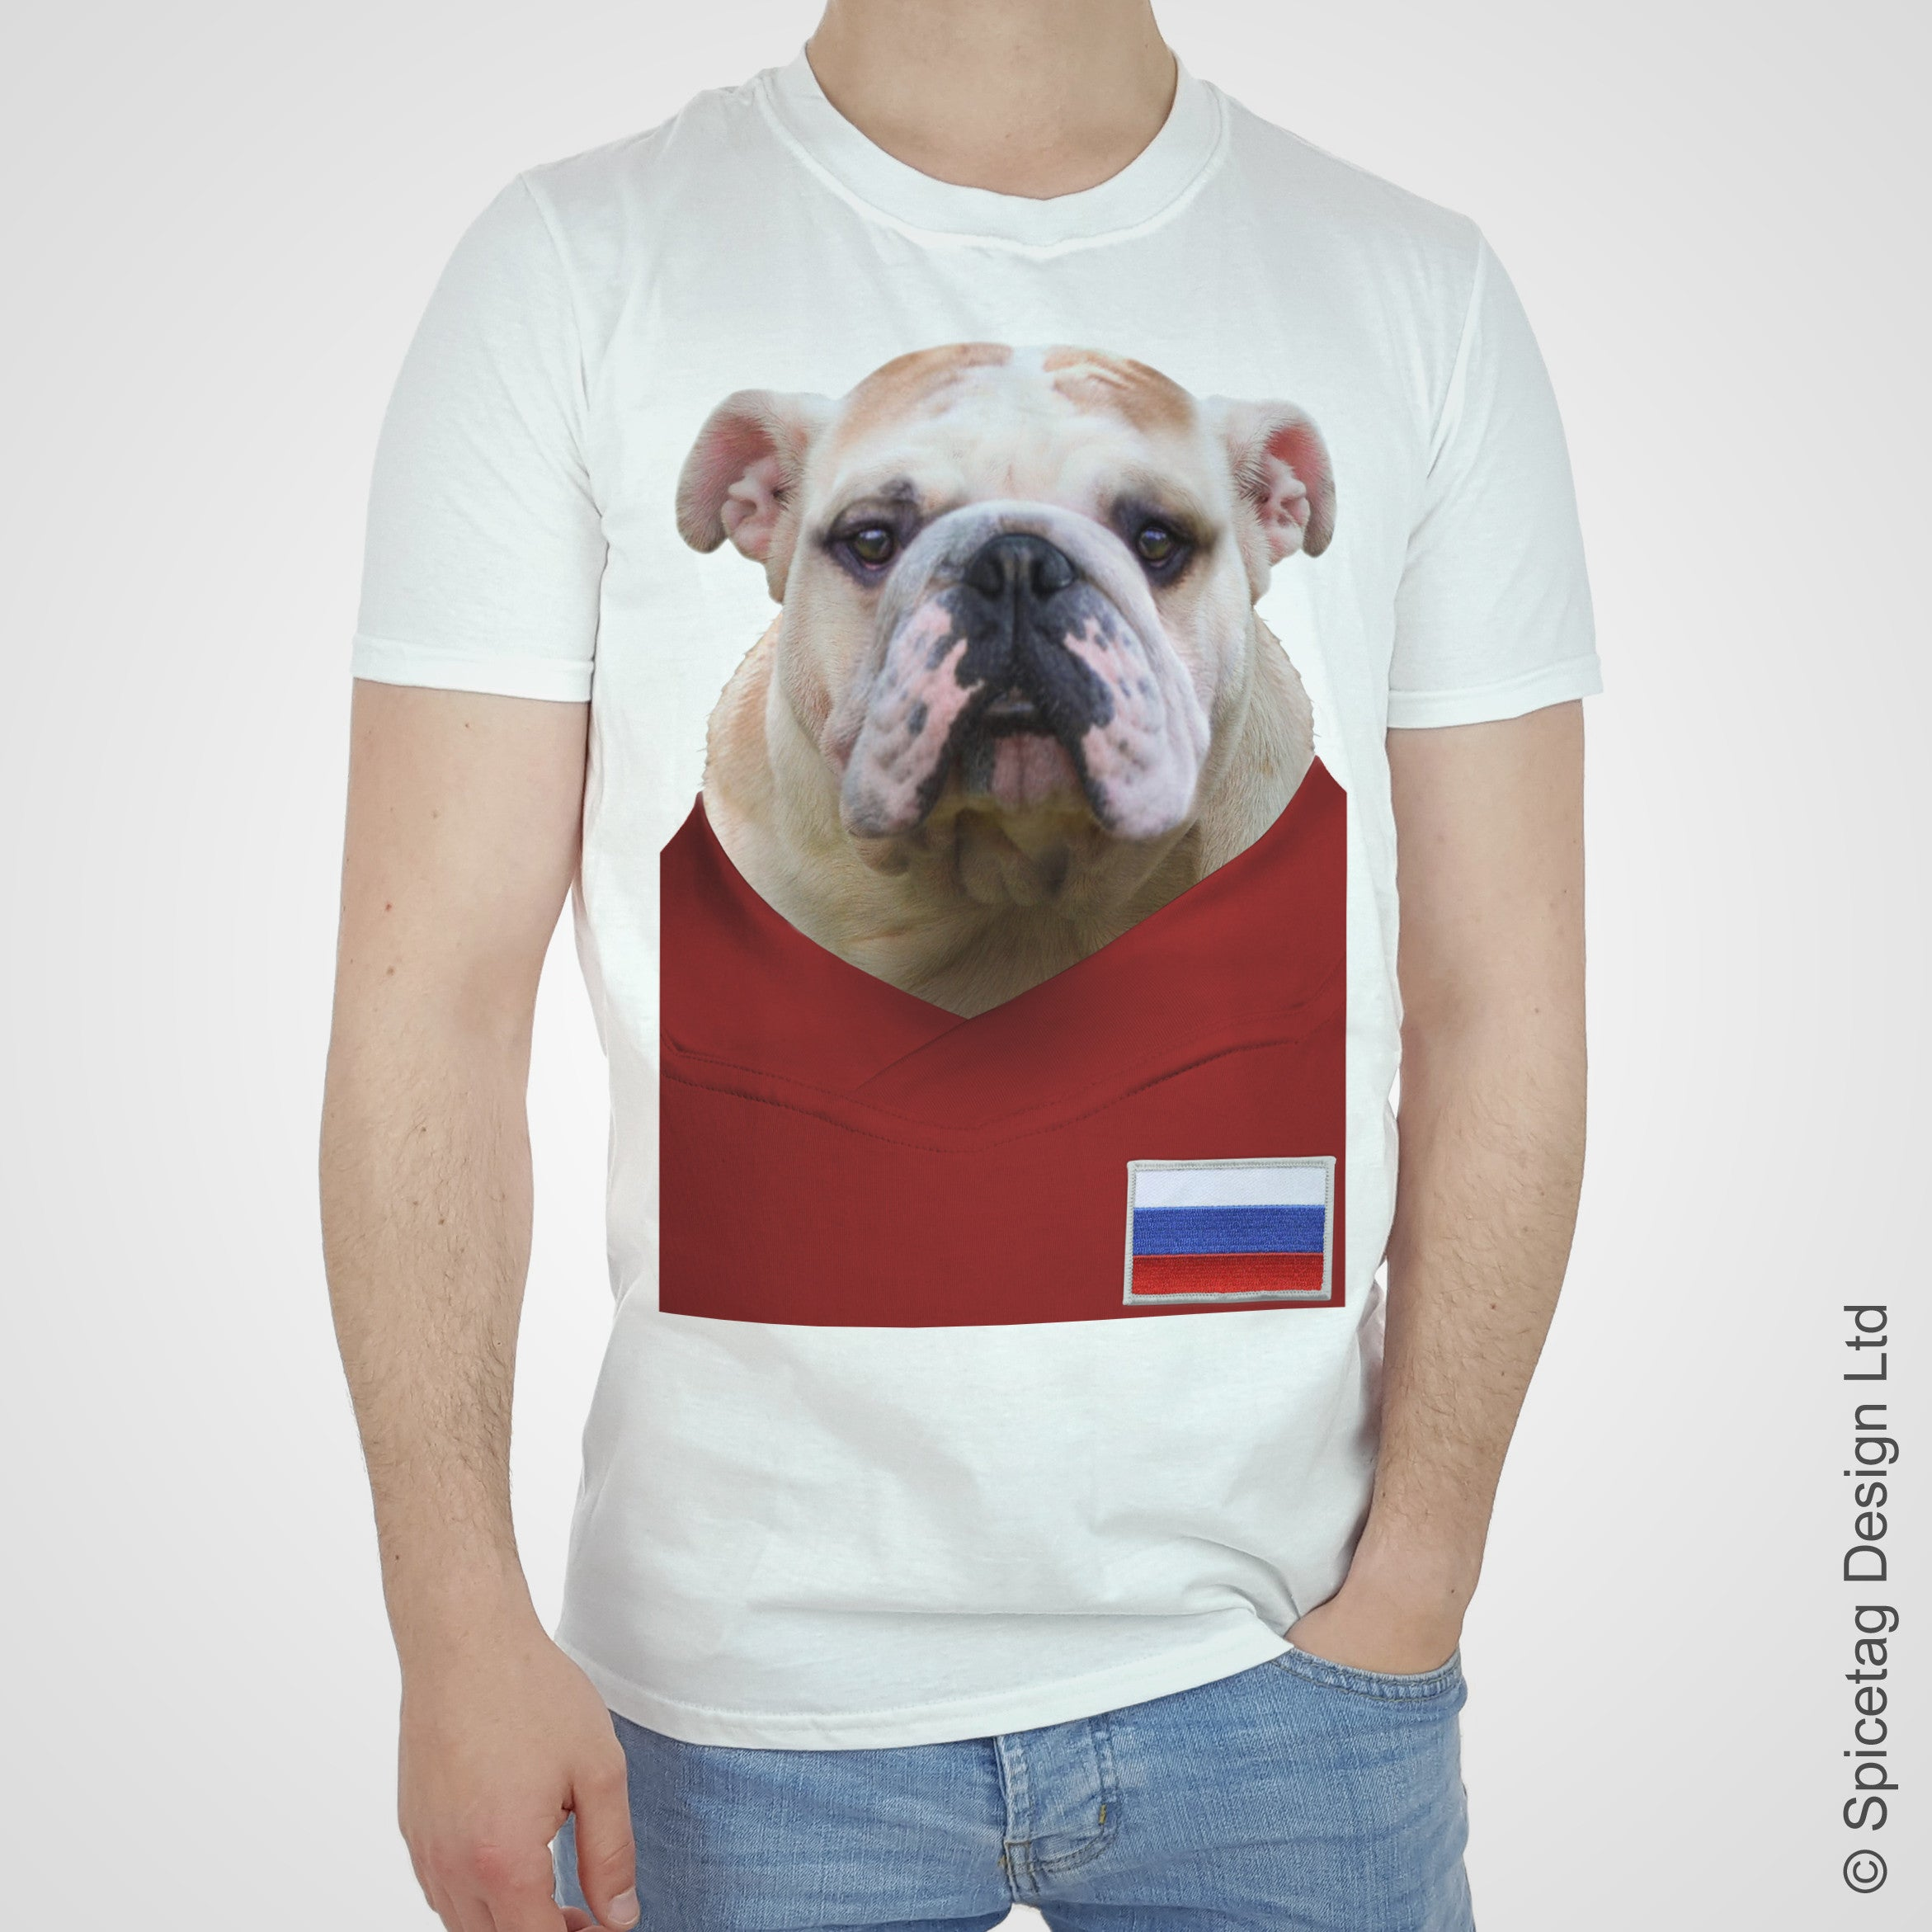 Russia Football Bulldog T-shirt